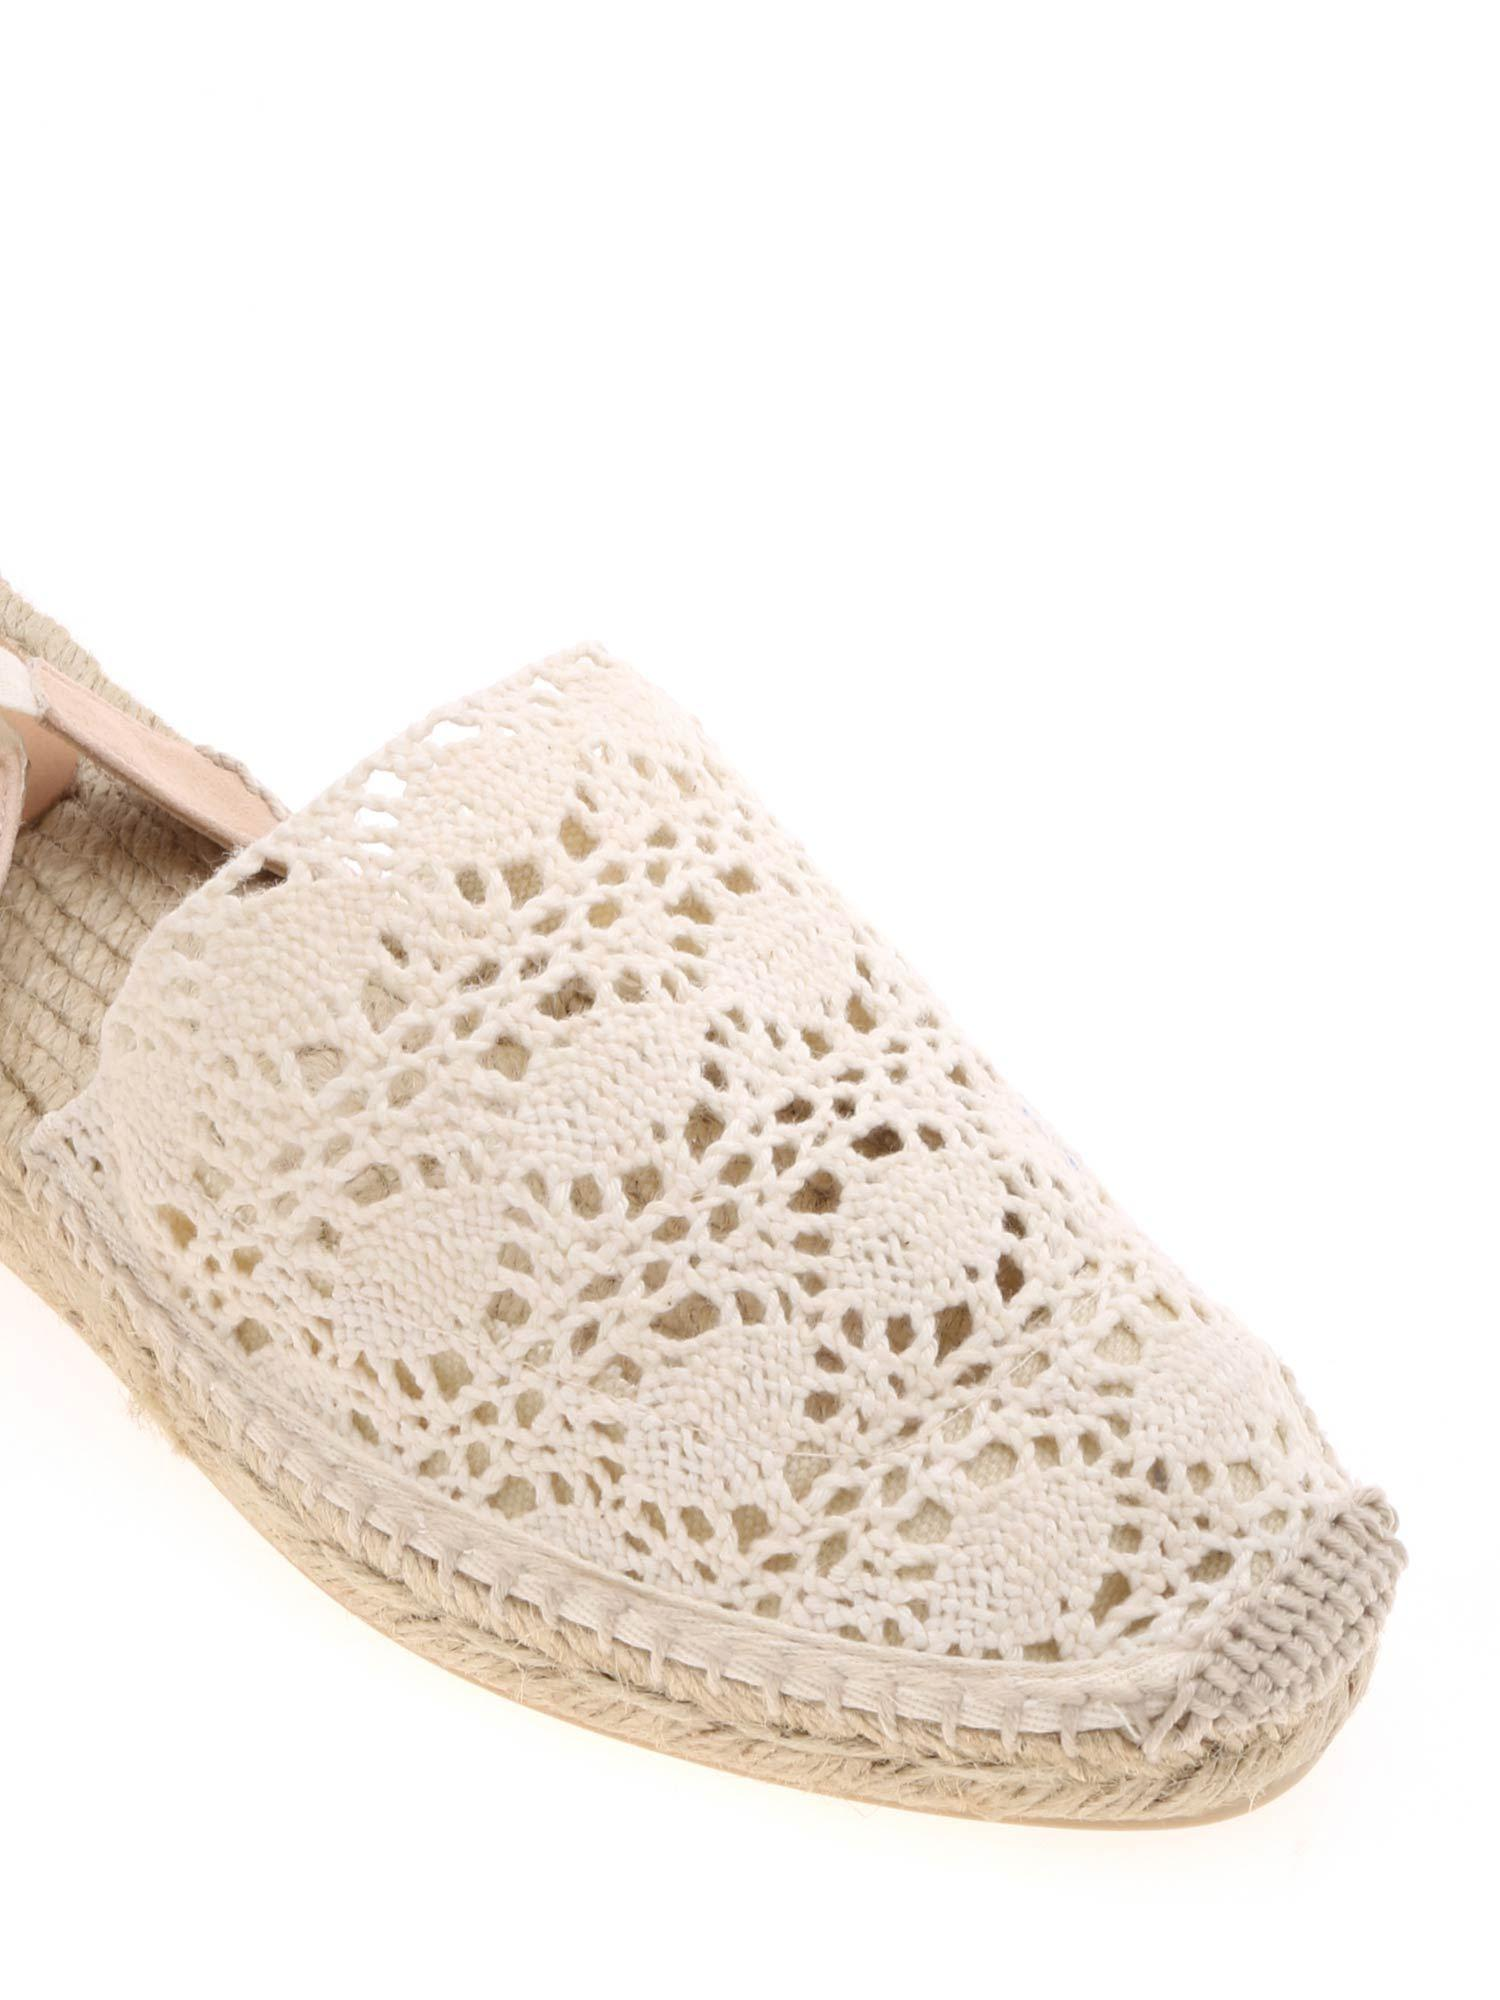 5a432748169e Castaner - White Gabe Espadrilles In Lace In Ivory Color - Lyst. View  fullscreen